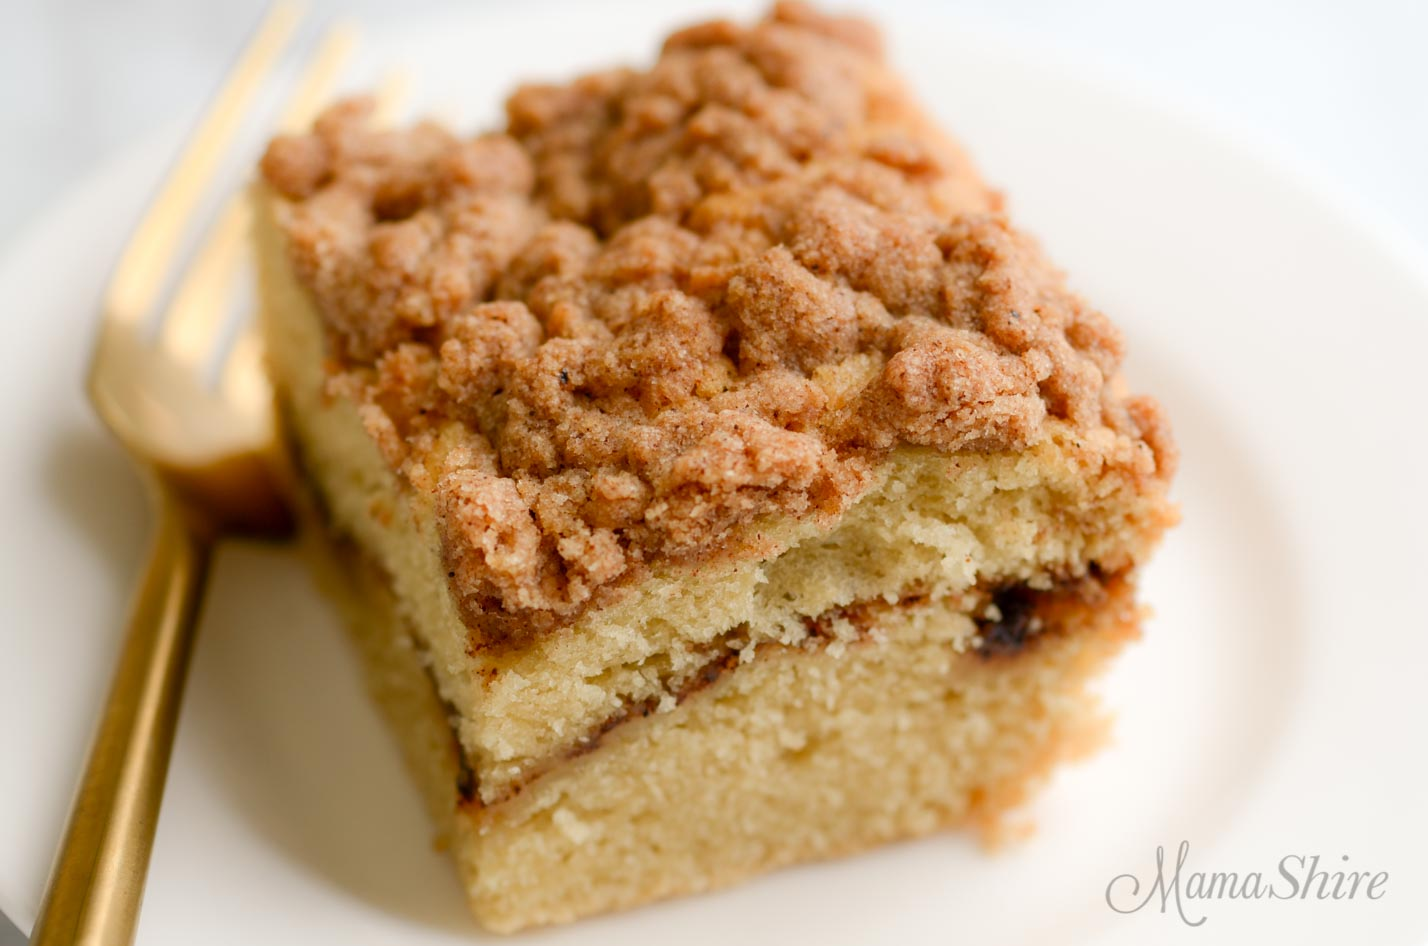 Gluten-free coffee cake recipe with cinnamon streusel topping and a layer of cinnamon and brown sugar in the middle.